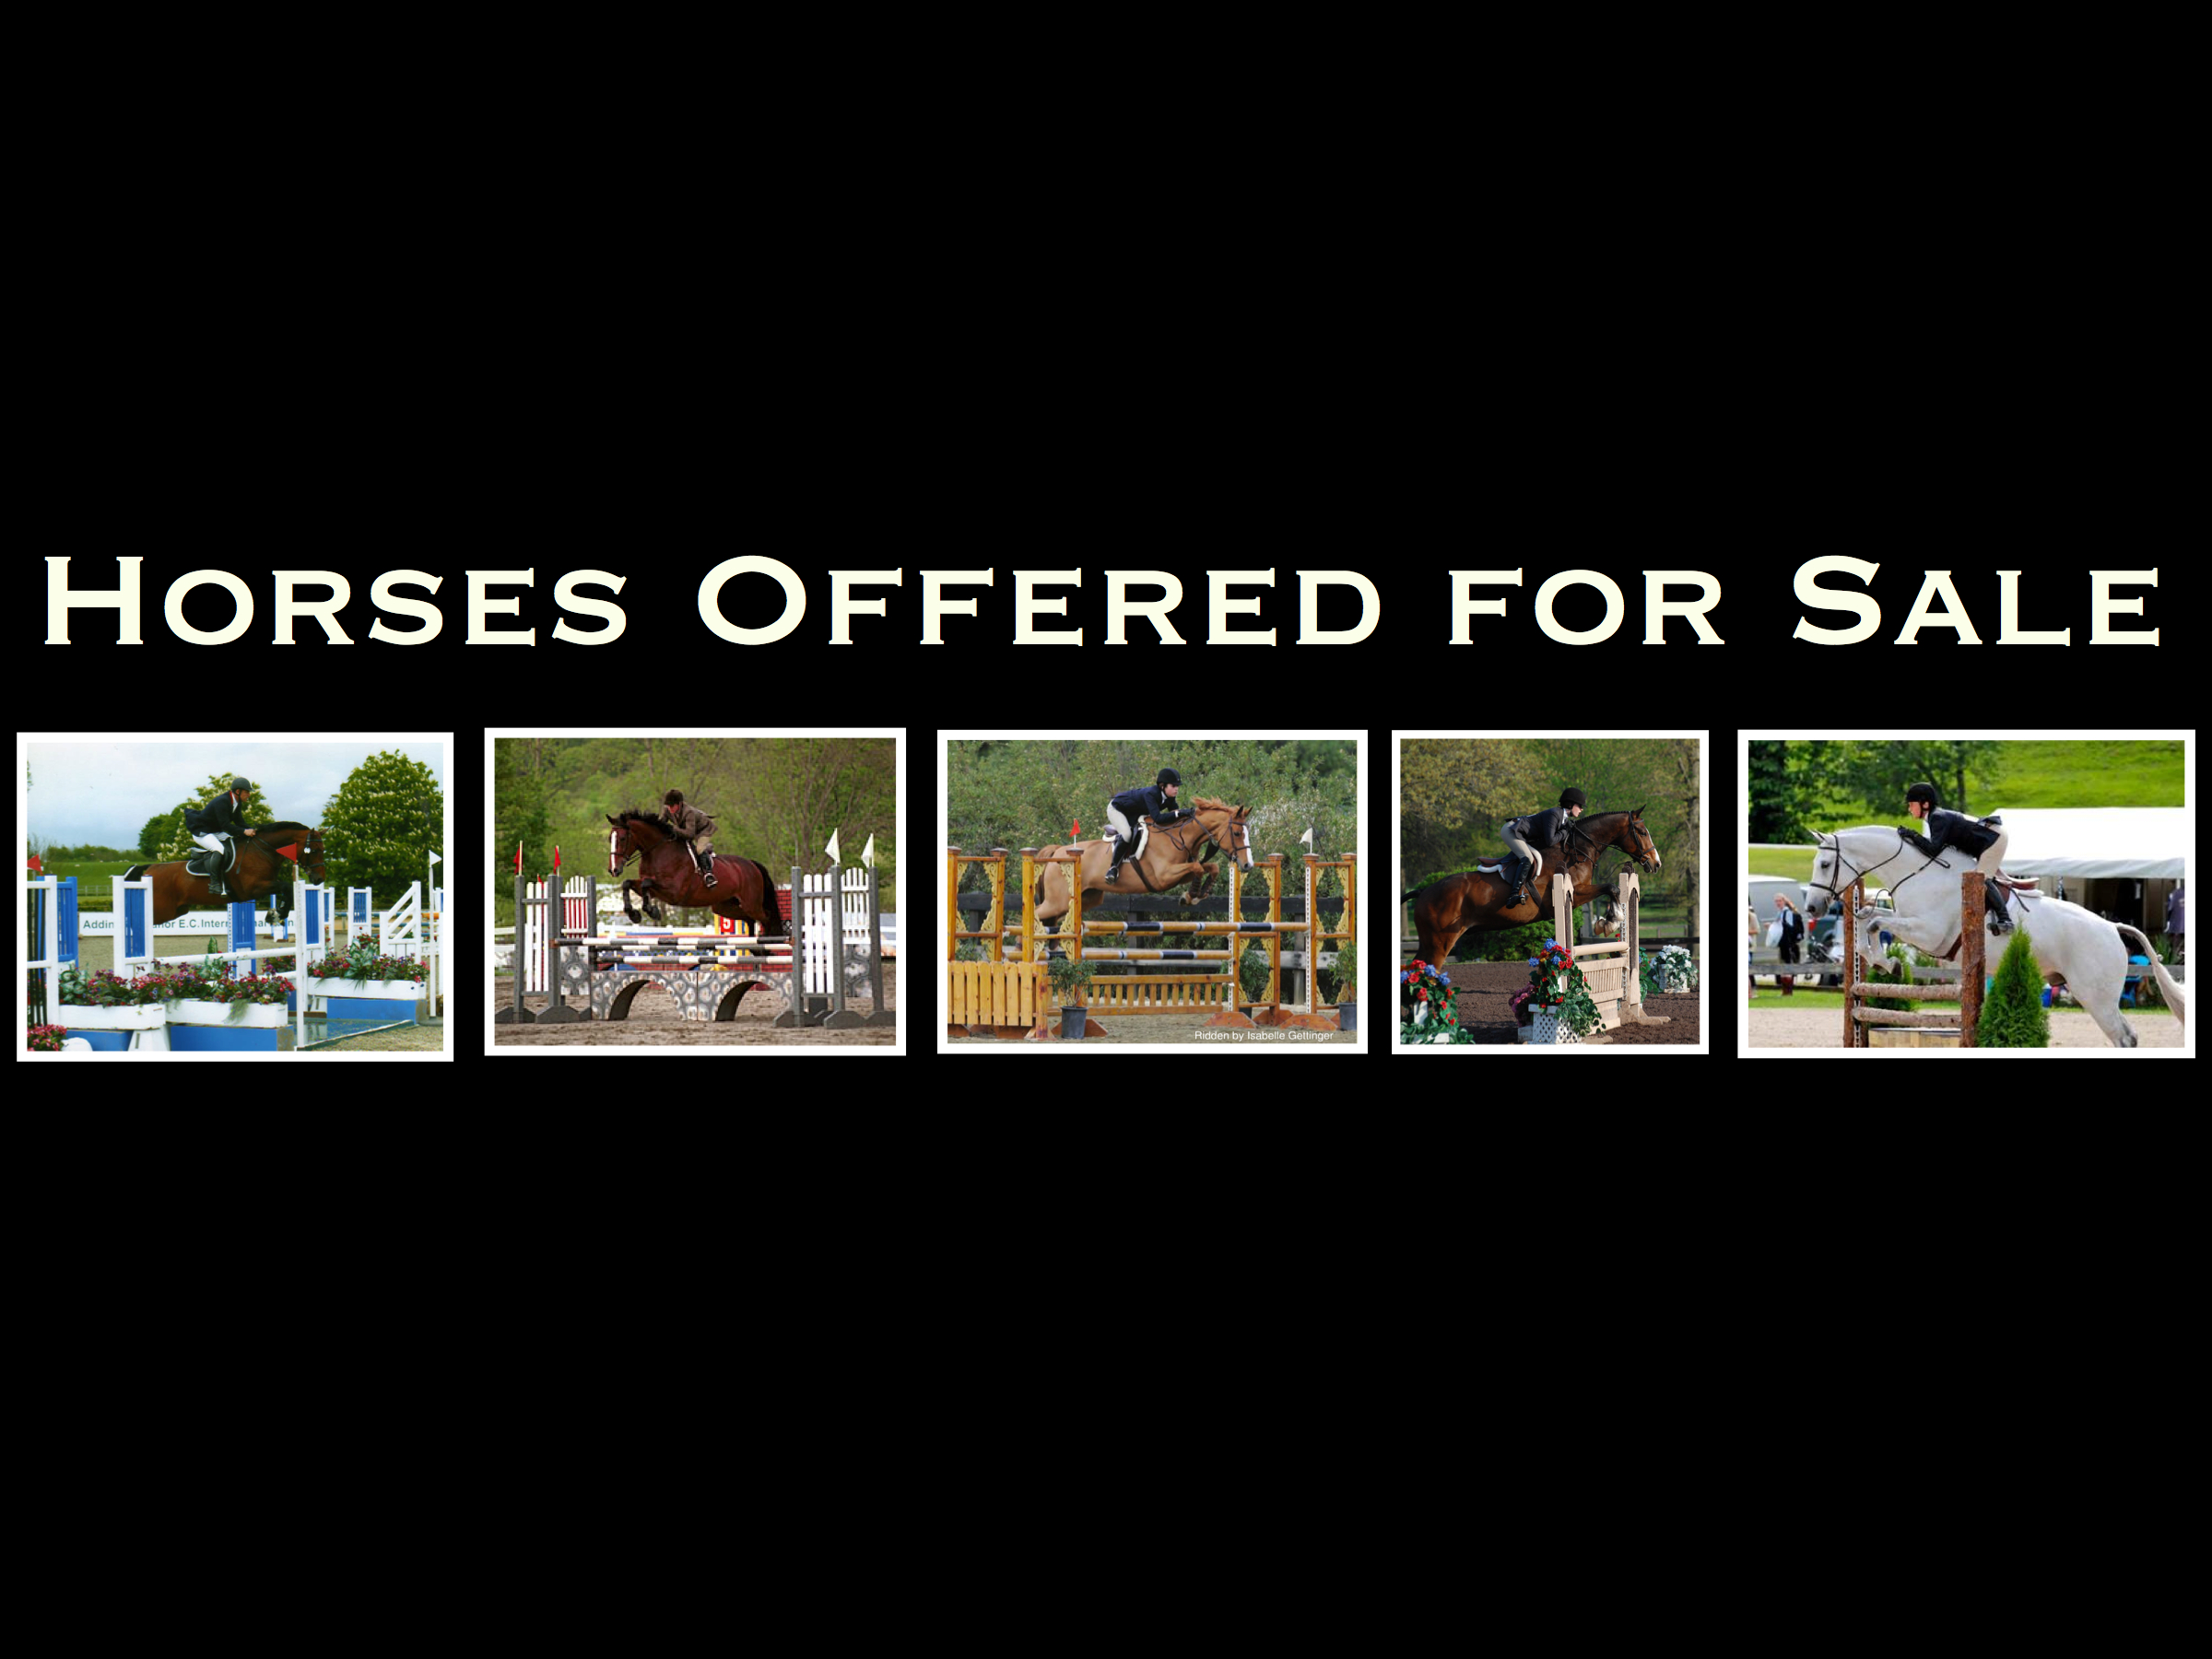 Horses Offered for Sale